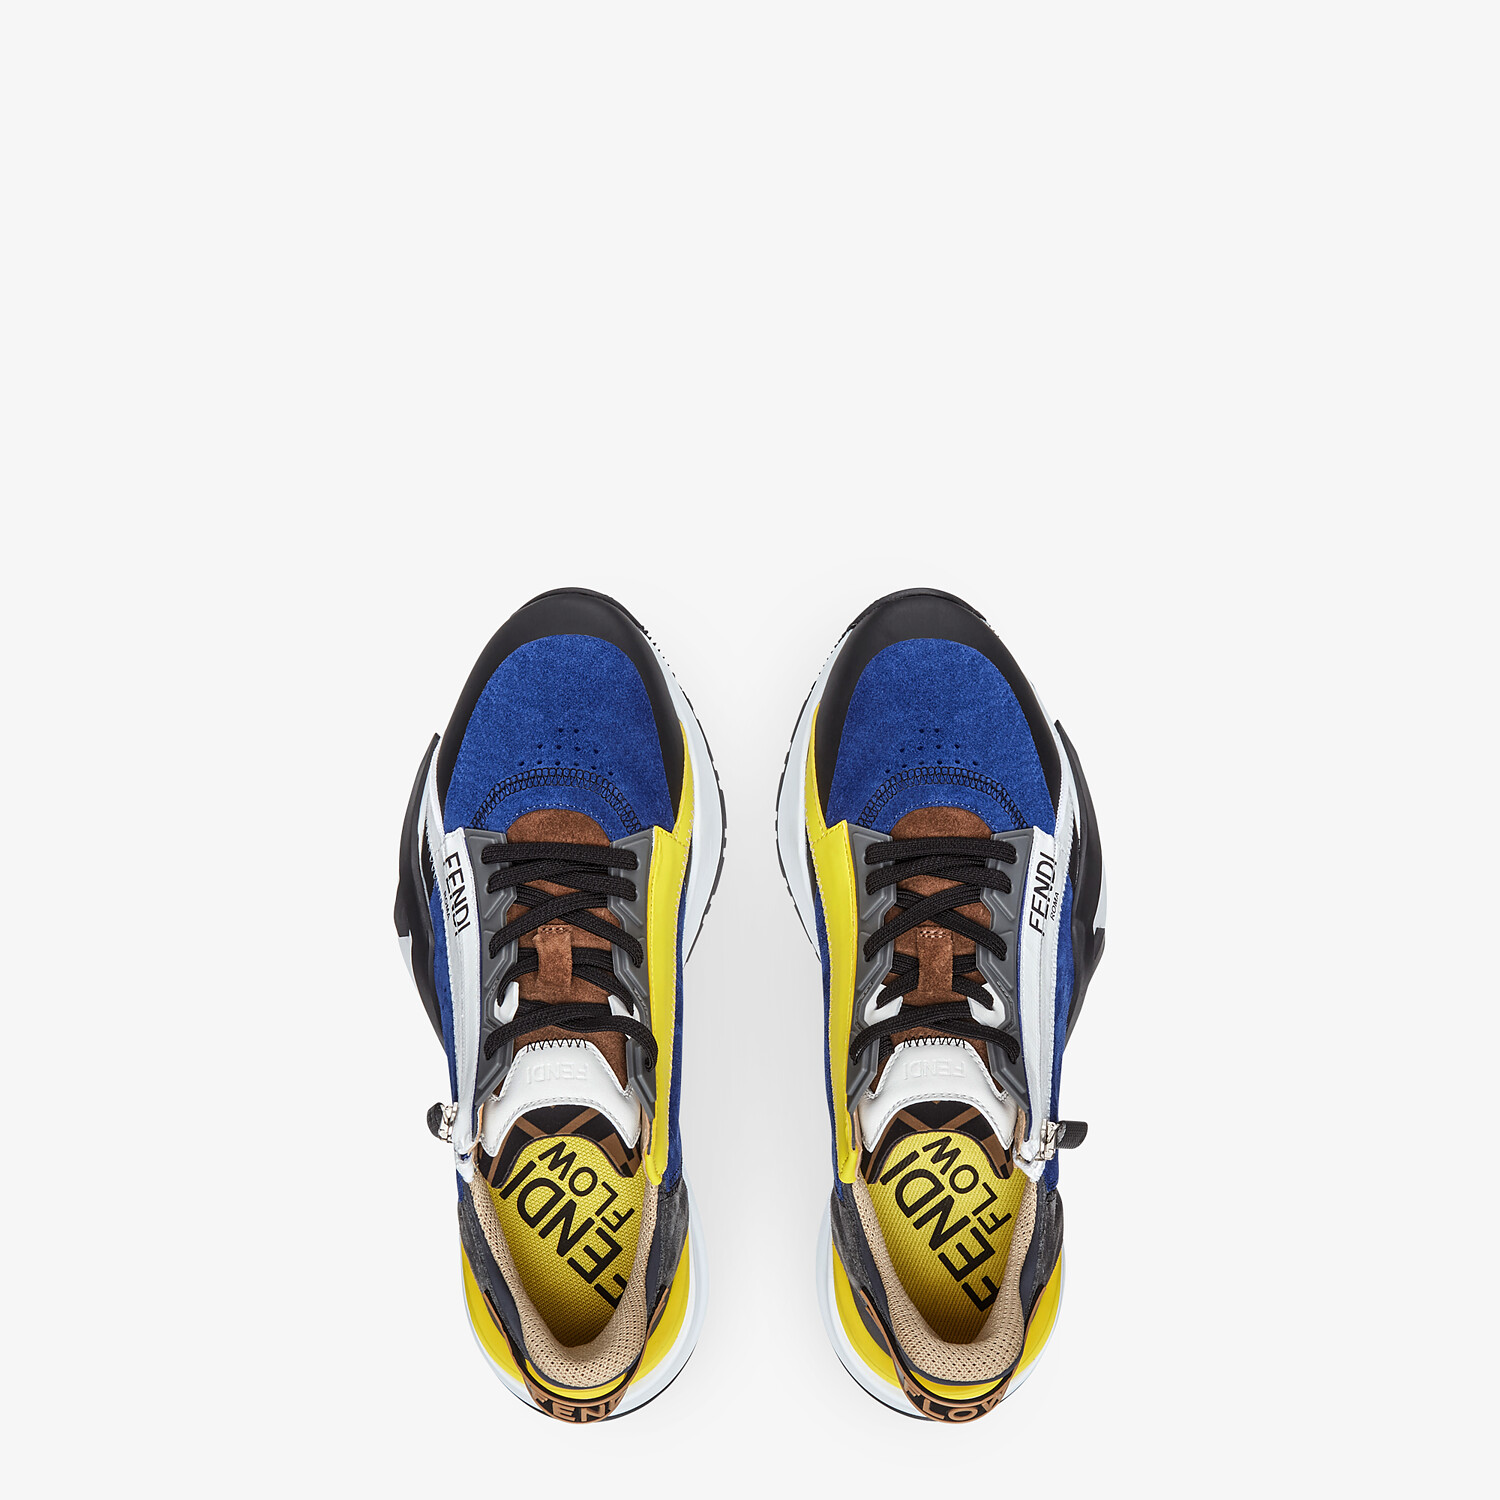 FENDI SNEAKERS - Multicolor suede low-tops - view 4 detail